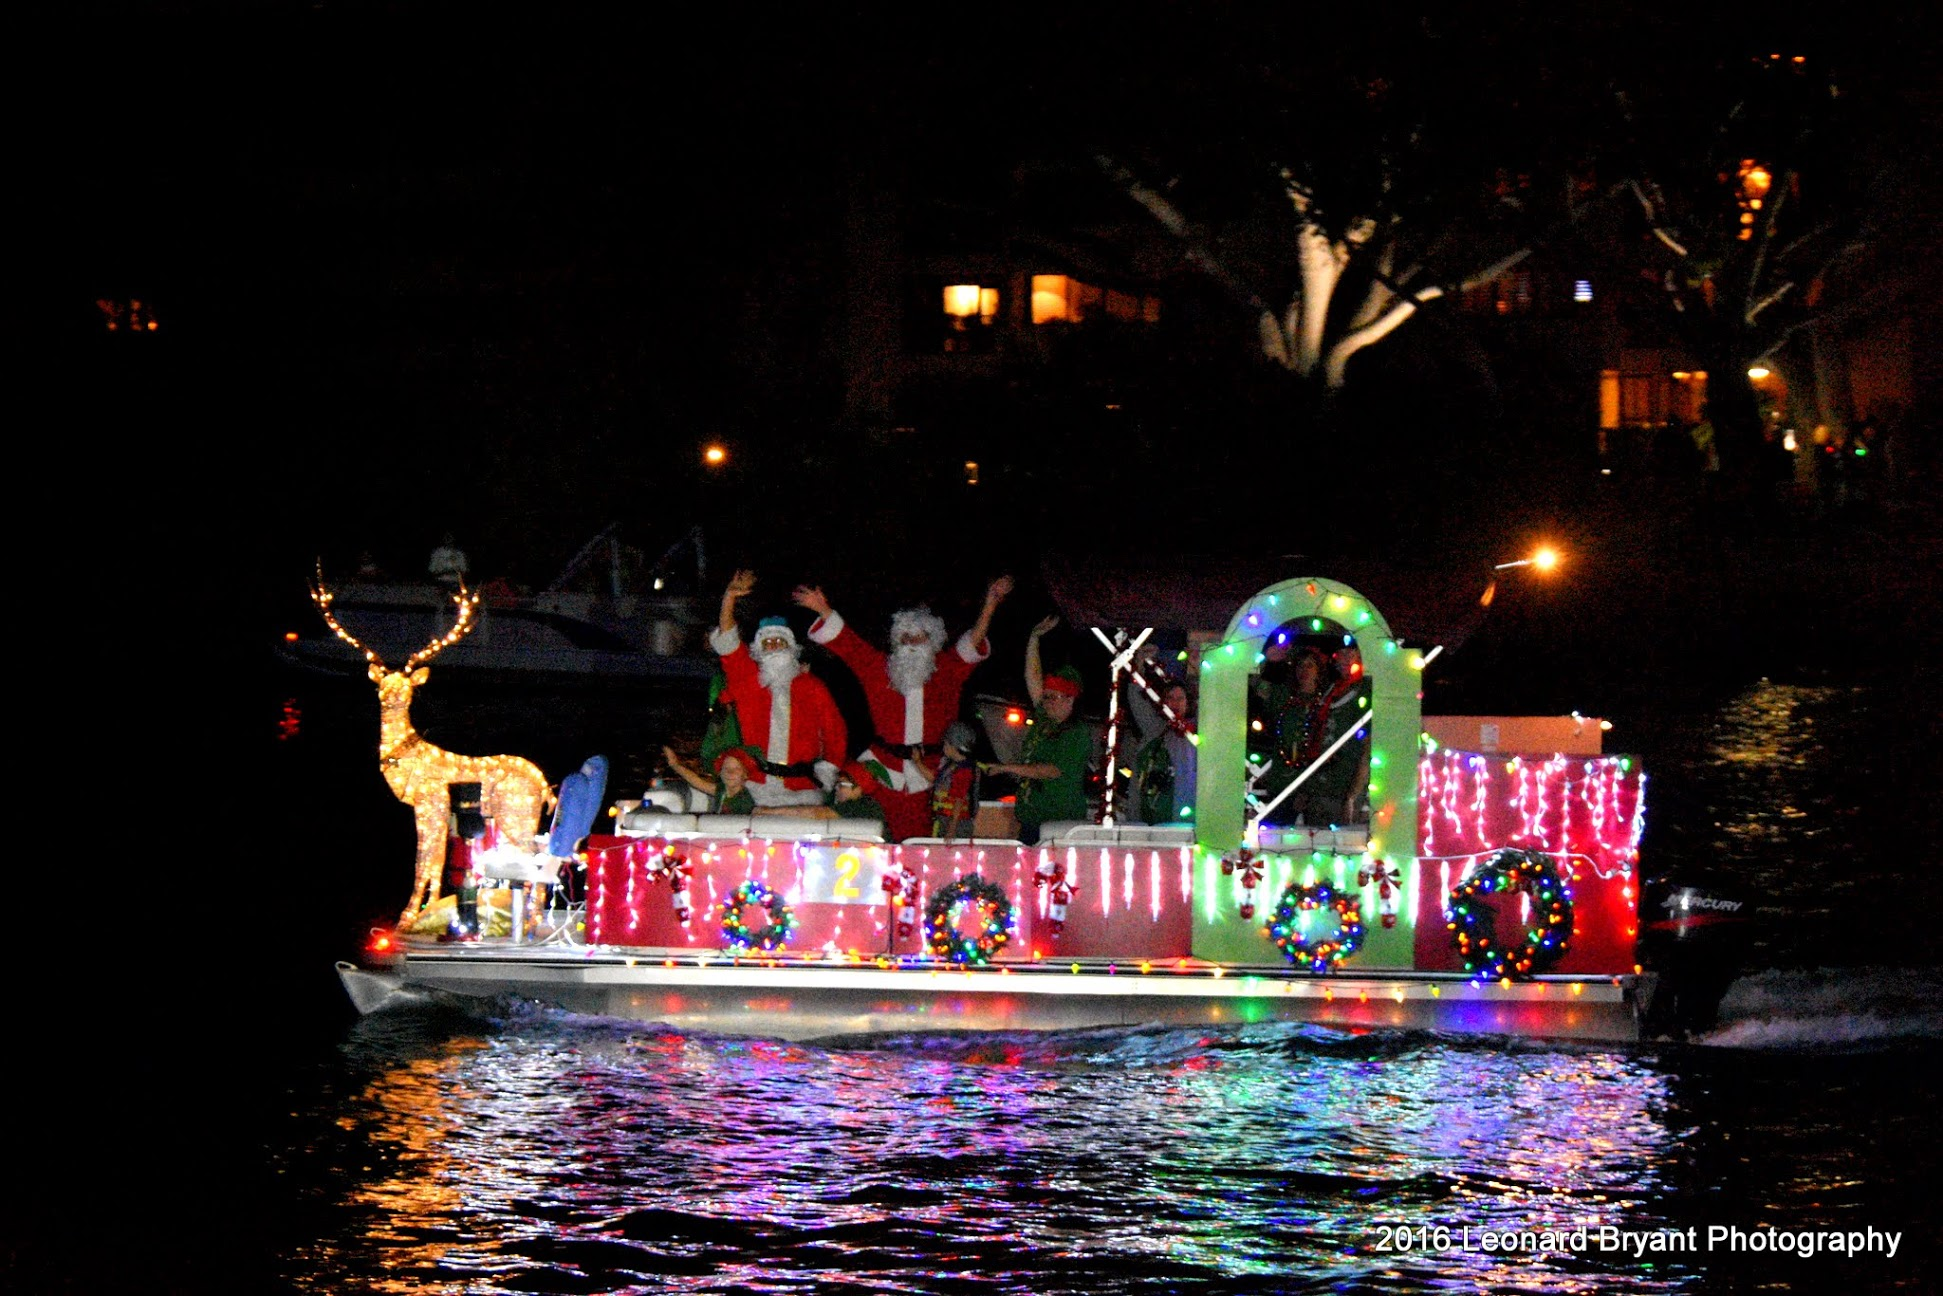 Christmas Boat Parade Decorating Ideas.Decorating Your Boat For The Holidays Boats Com